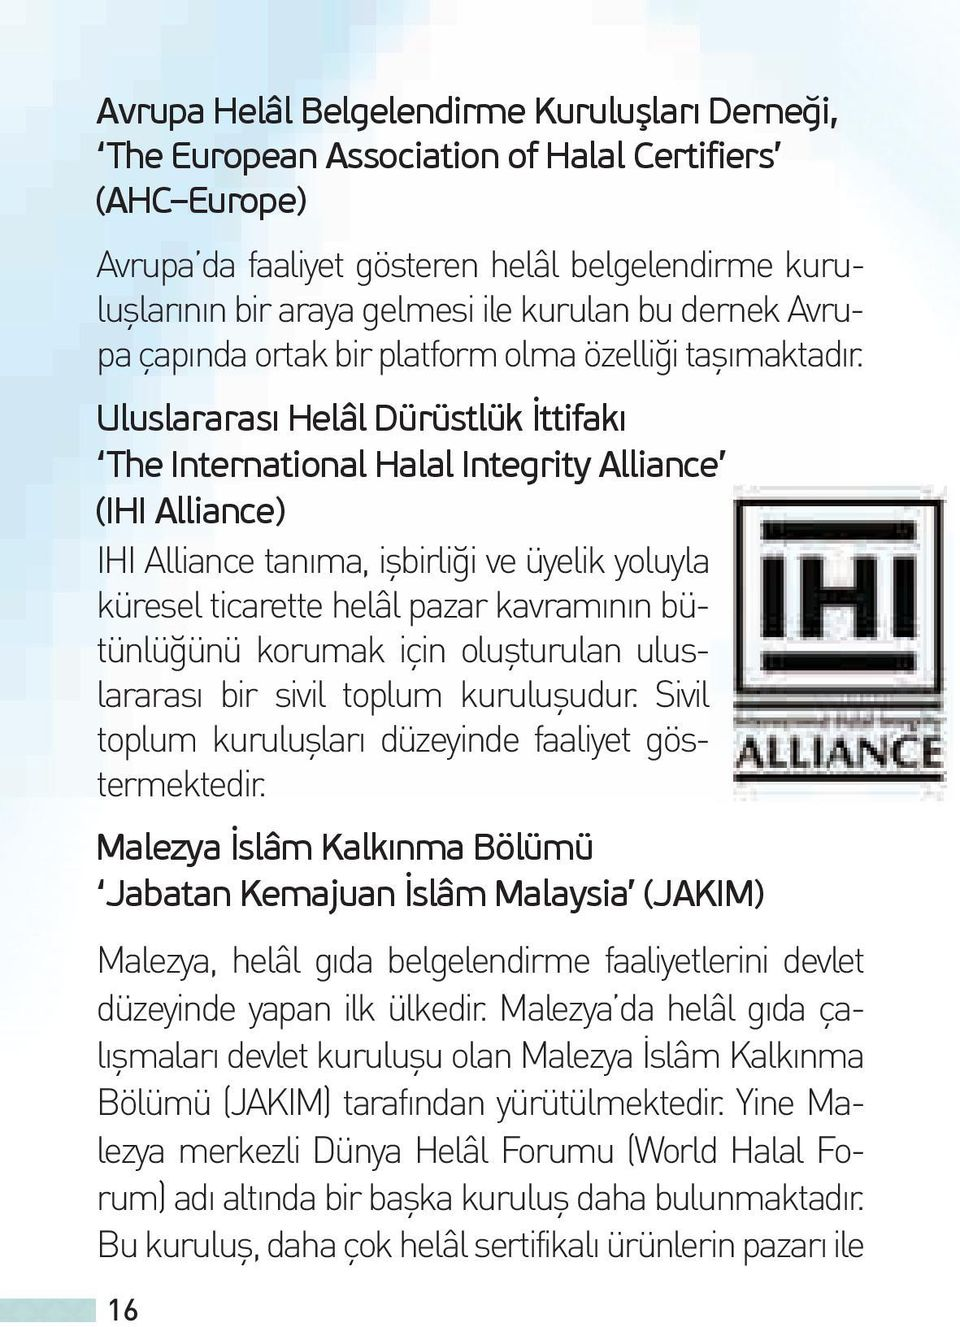 Uluslararası Helâl Dürüstlük İttifakı The International Halal Integrity Alliance (IHI Alliance) IHI Alliance tanıma, işbirliği ve üyelik yoluyla küresel ticarette helâl pazar kavramının bütünlüğünü